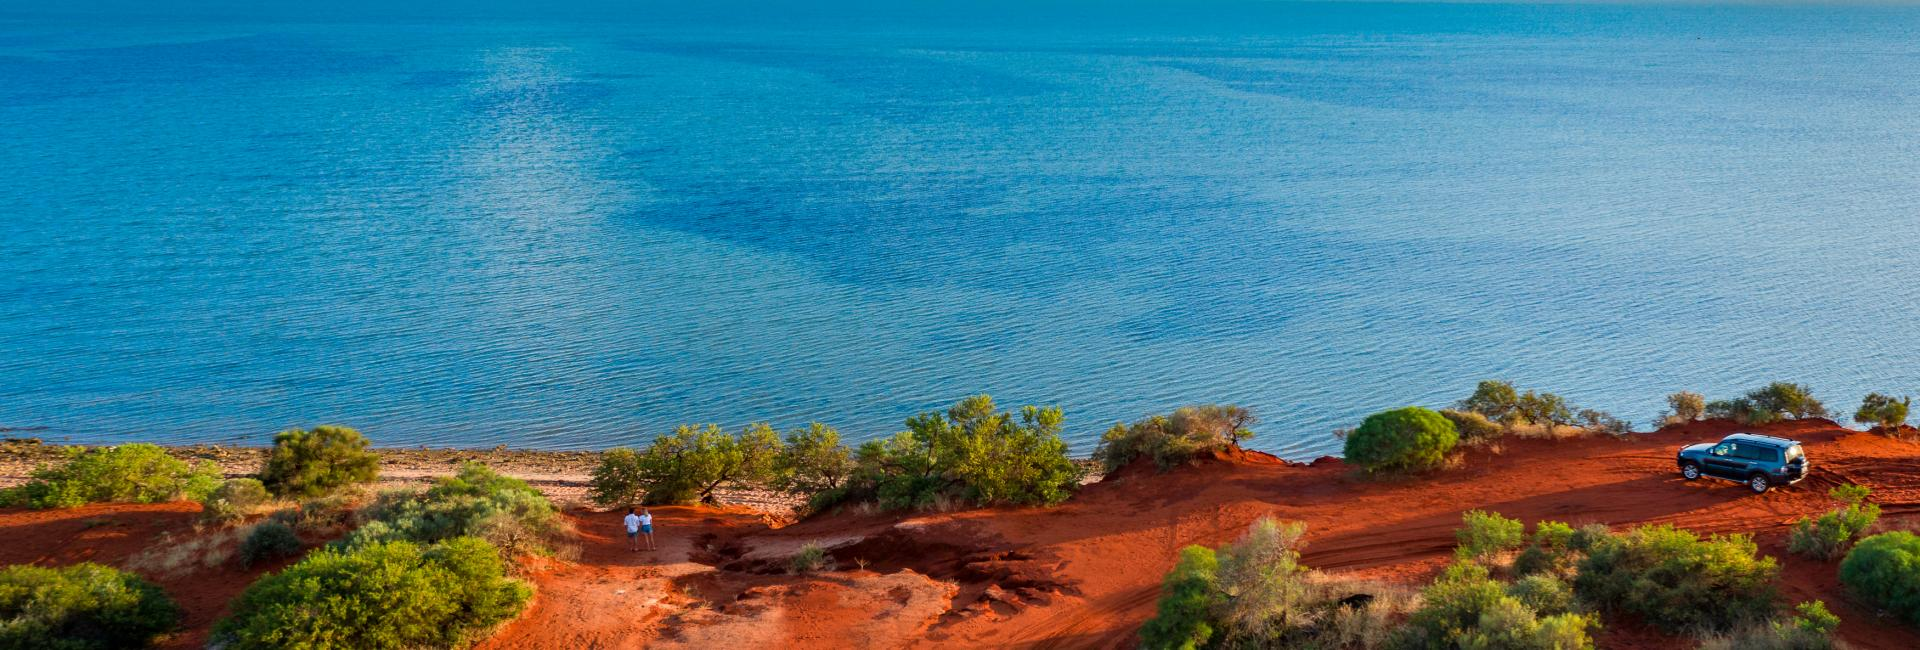 Monkey Mia in Shark Bay, Western Australia's Coral Coast